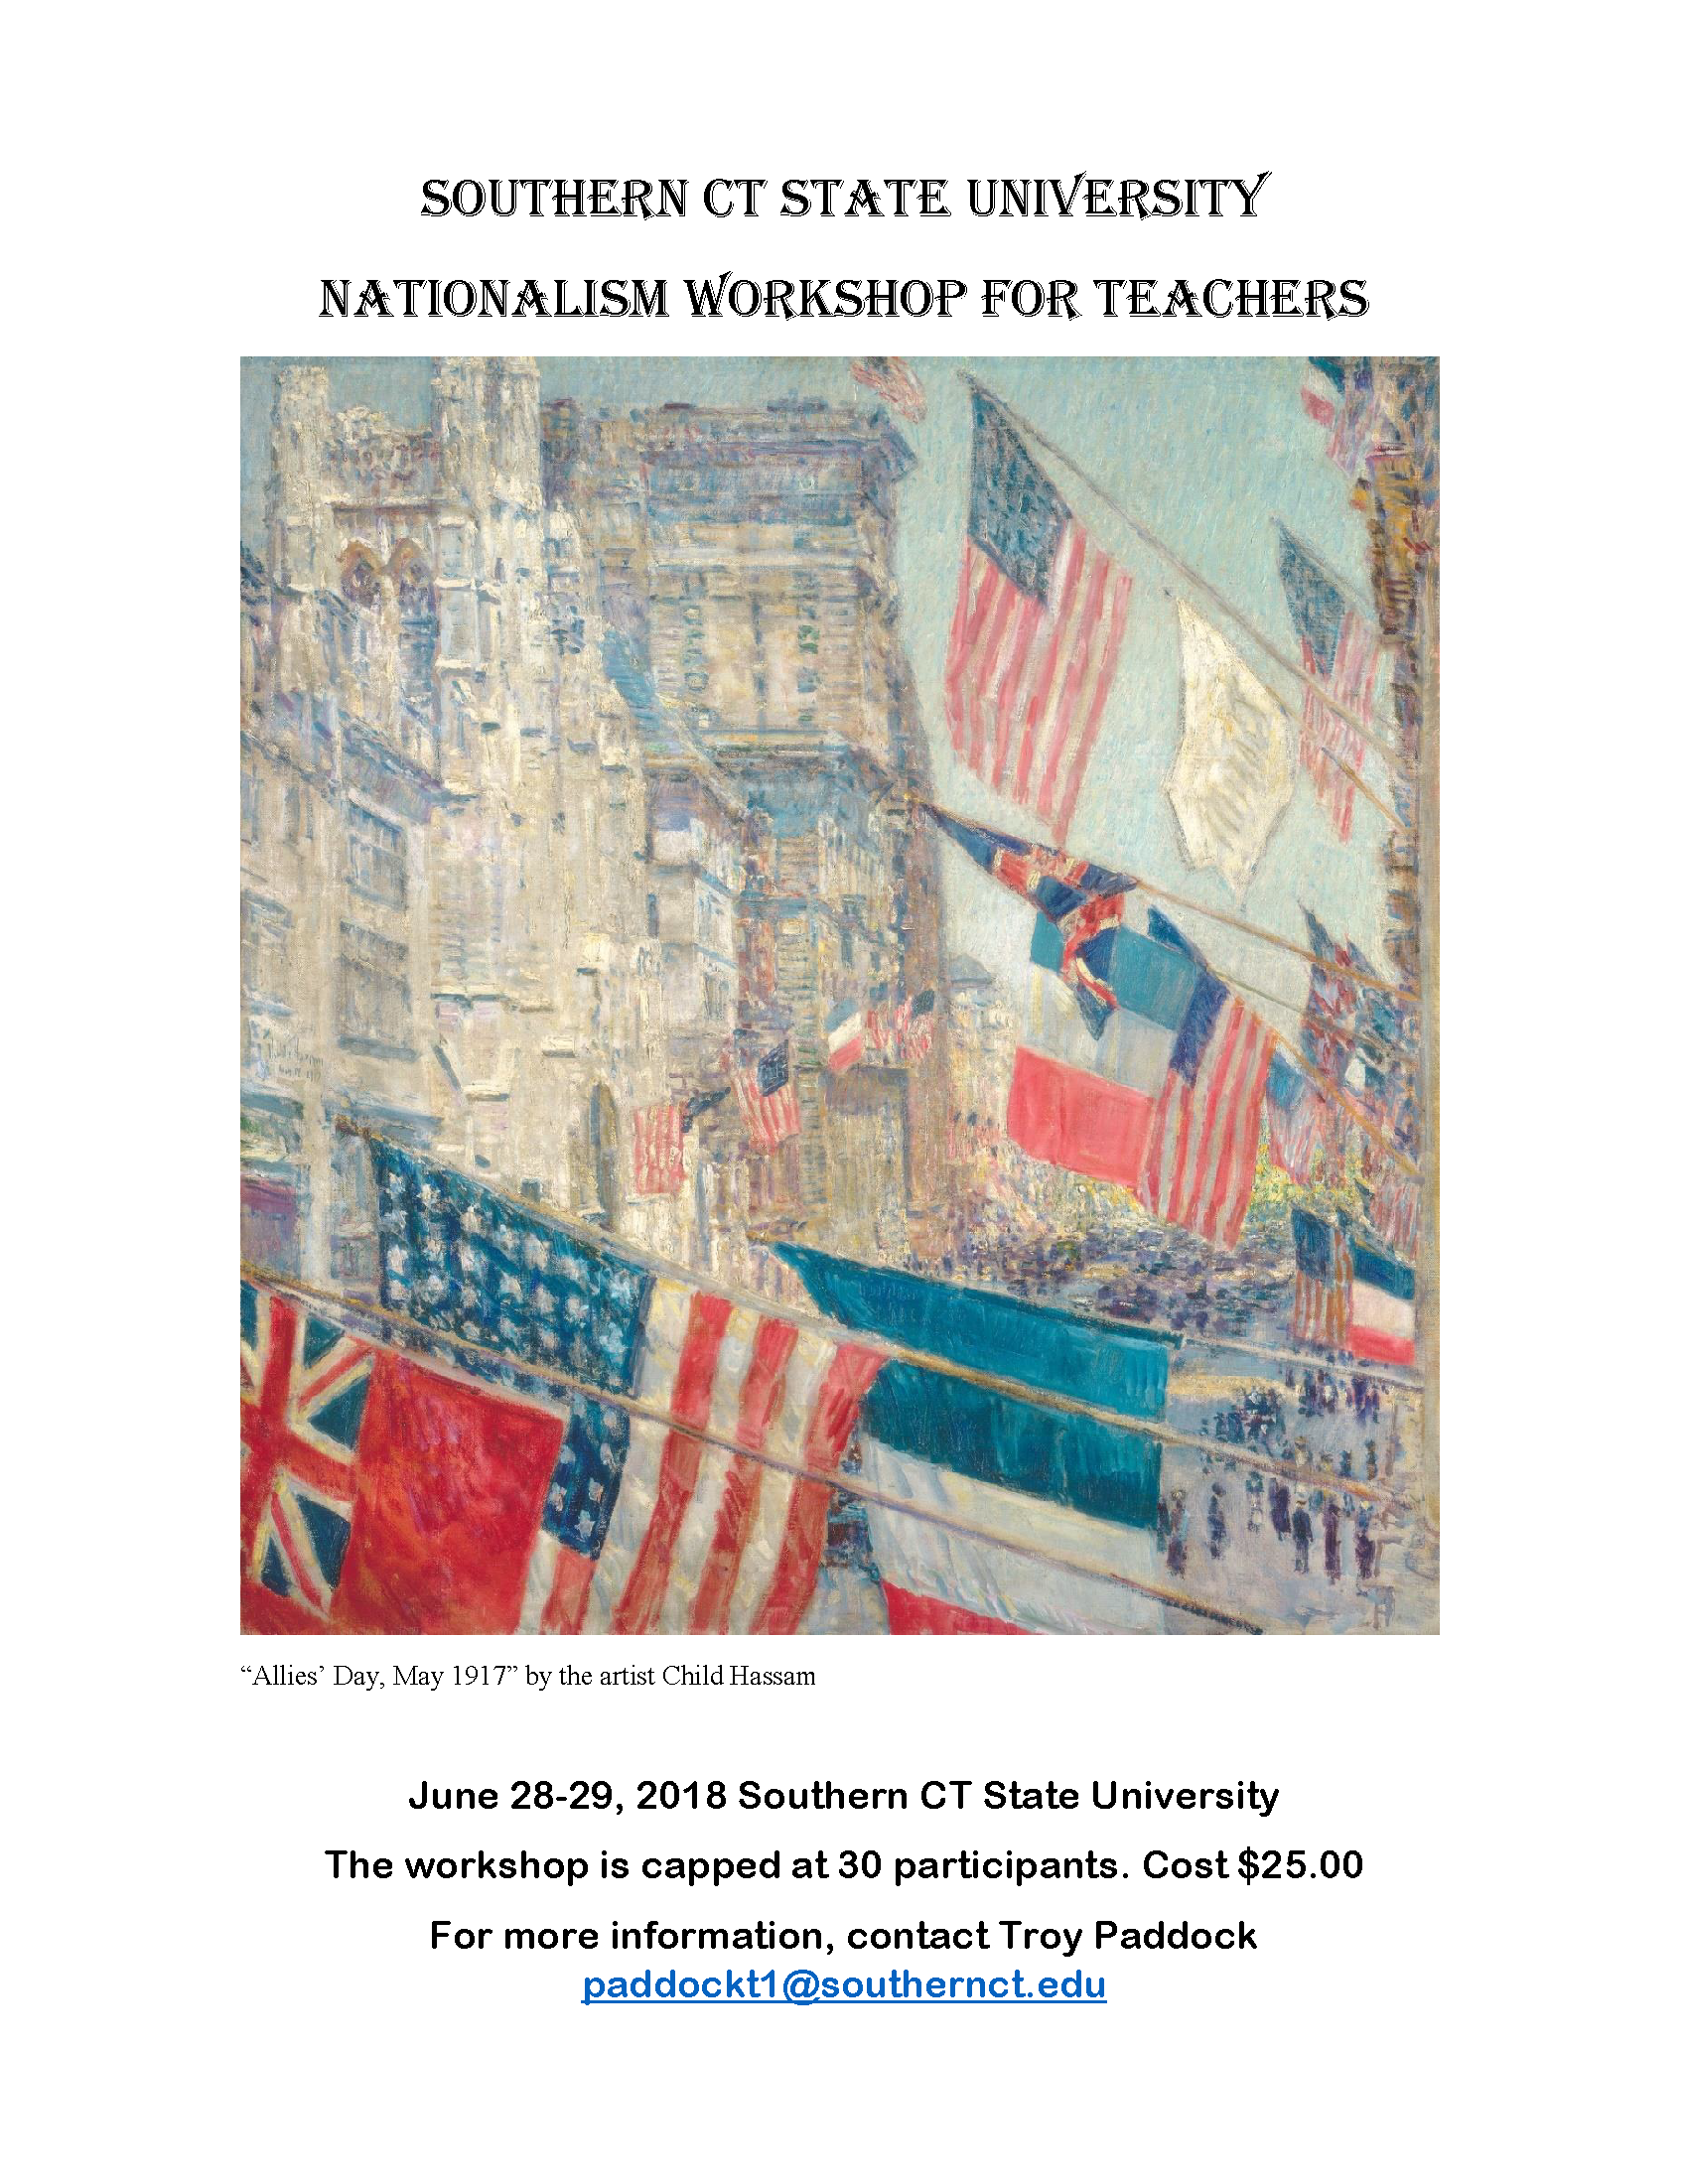 Southern CT State University Nationalism Workshop for teachers